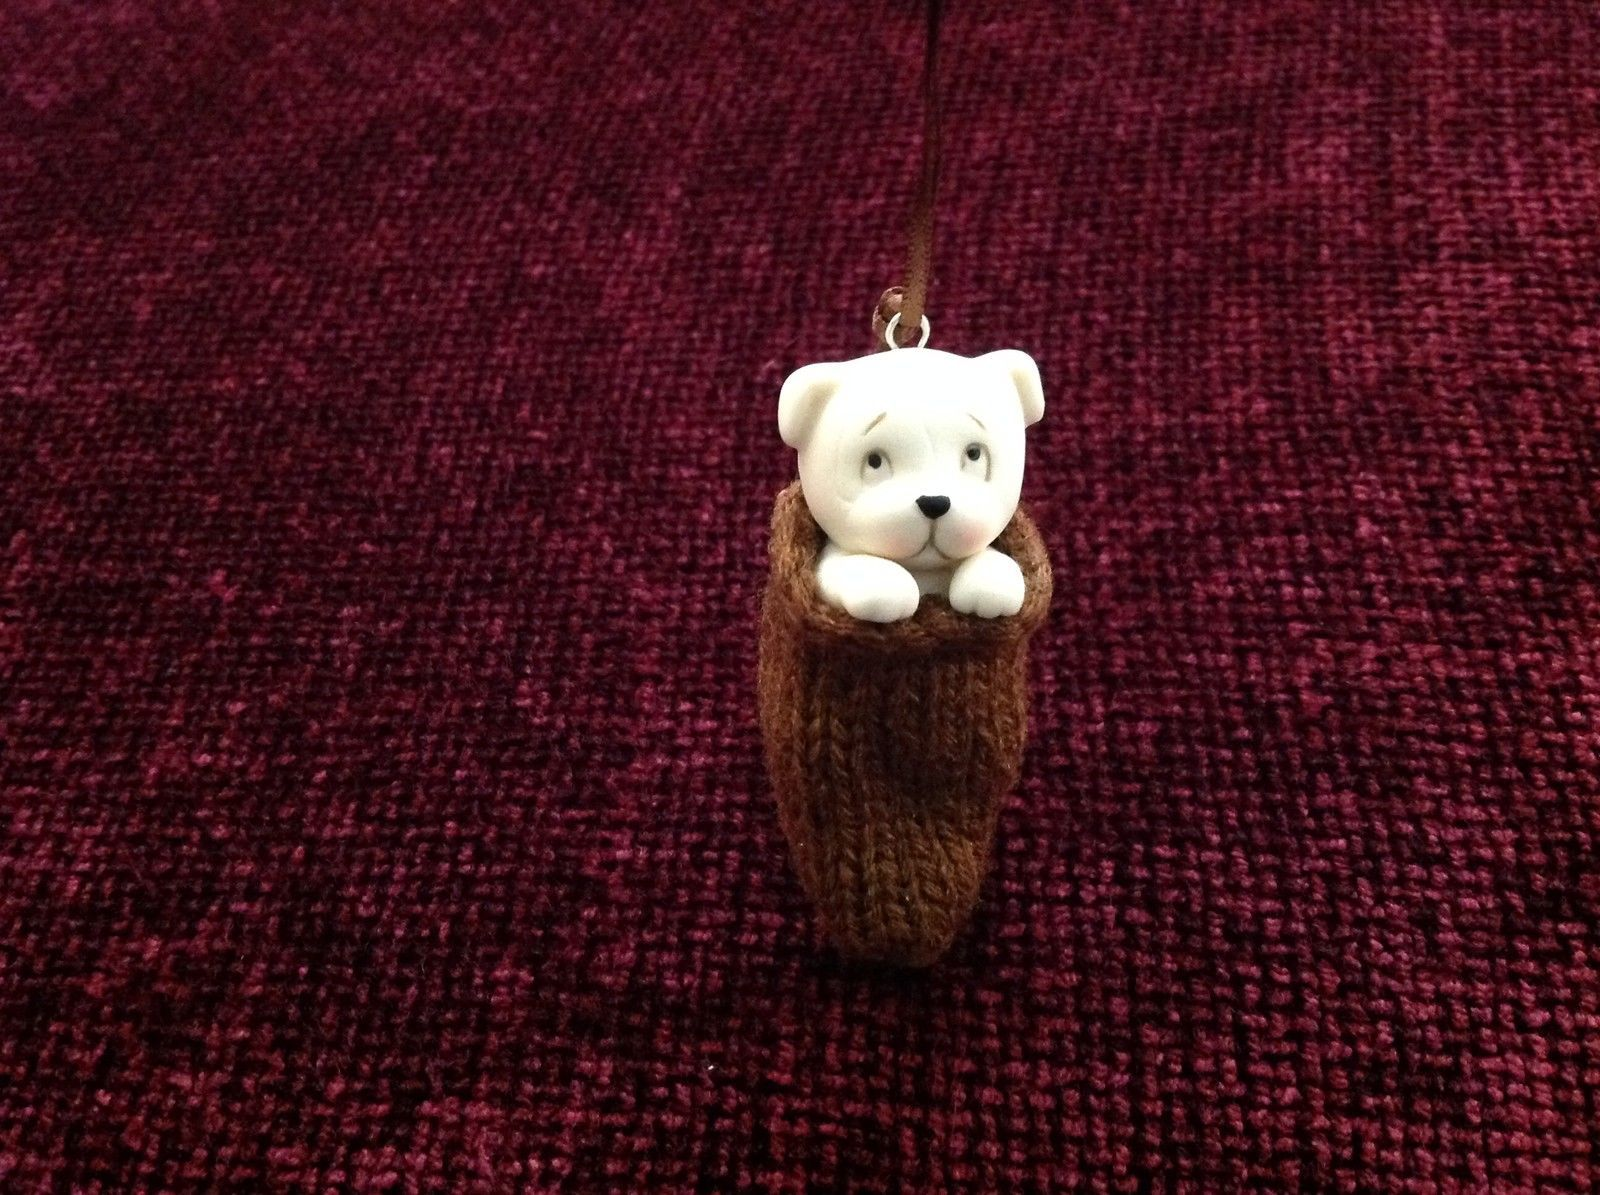 Small Porcelain Blushing puppy Dog in Small Knitted Sock Choice of Sock Color